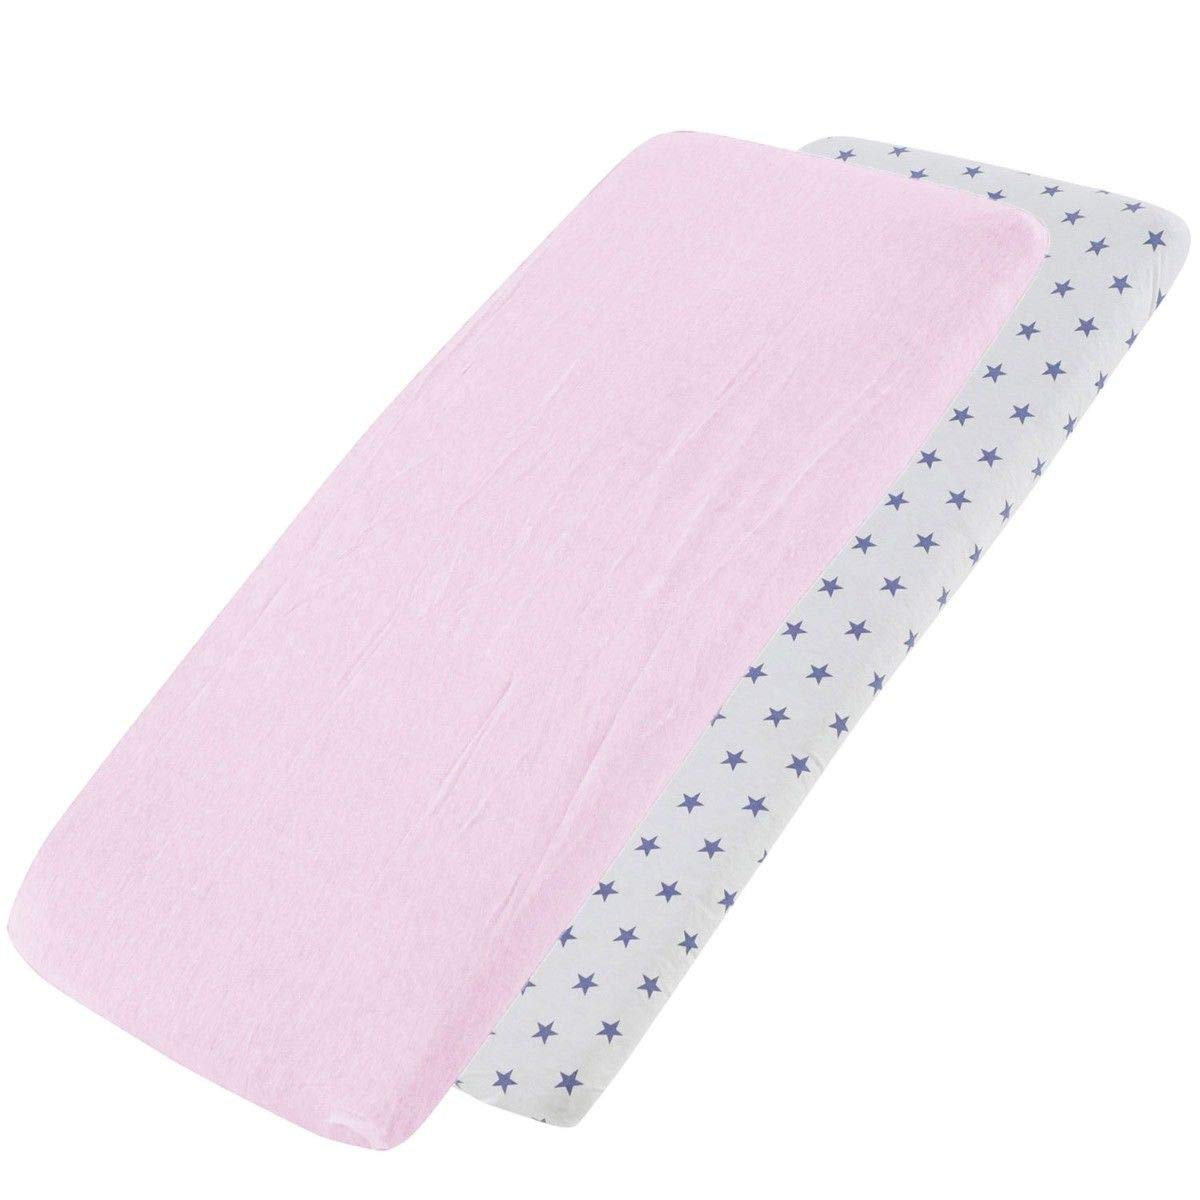 2X Blue Star Cot Fitted Sheet 100/% Cotton 120x60cm